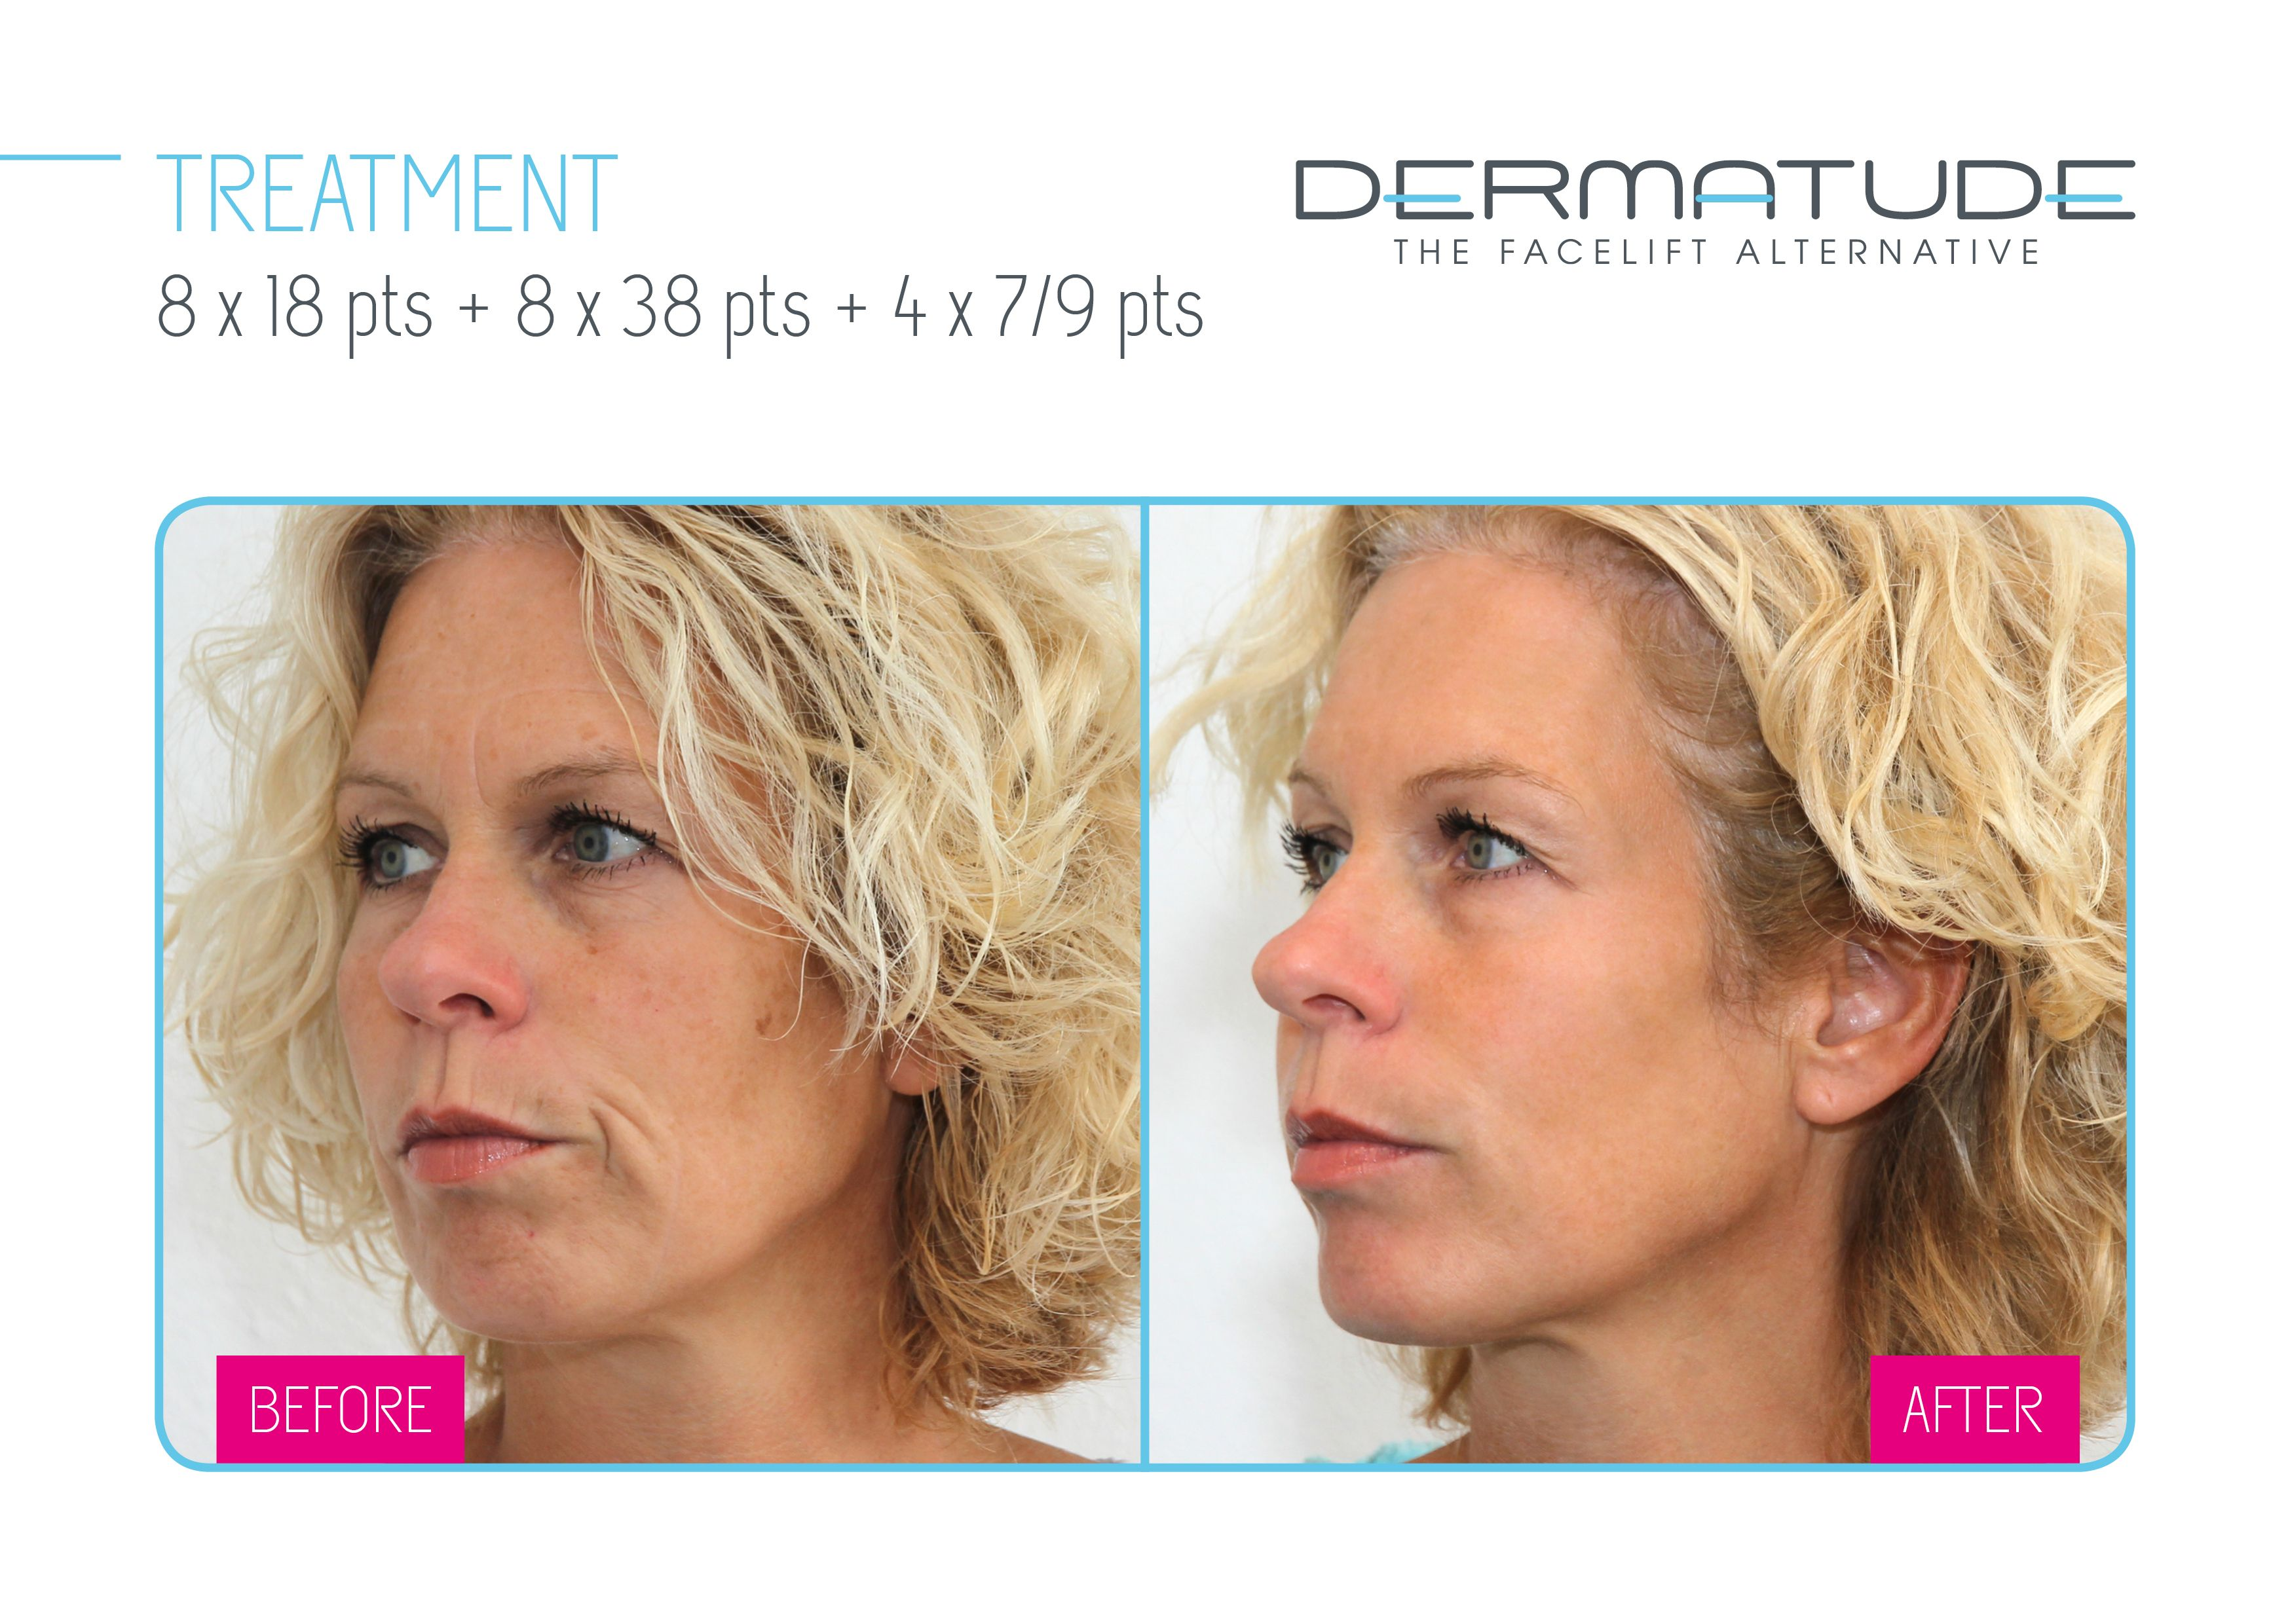 The Facelift Alternative Anti Aging Treatments Treatment Facelift